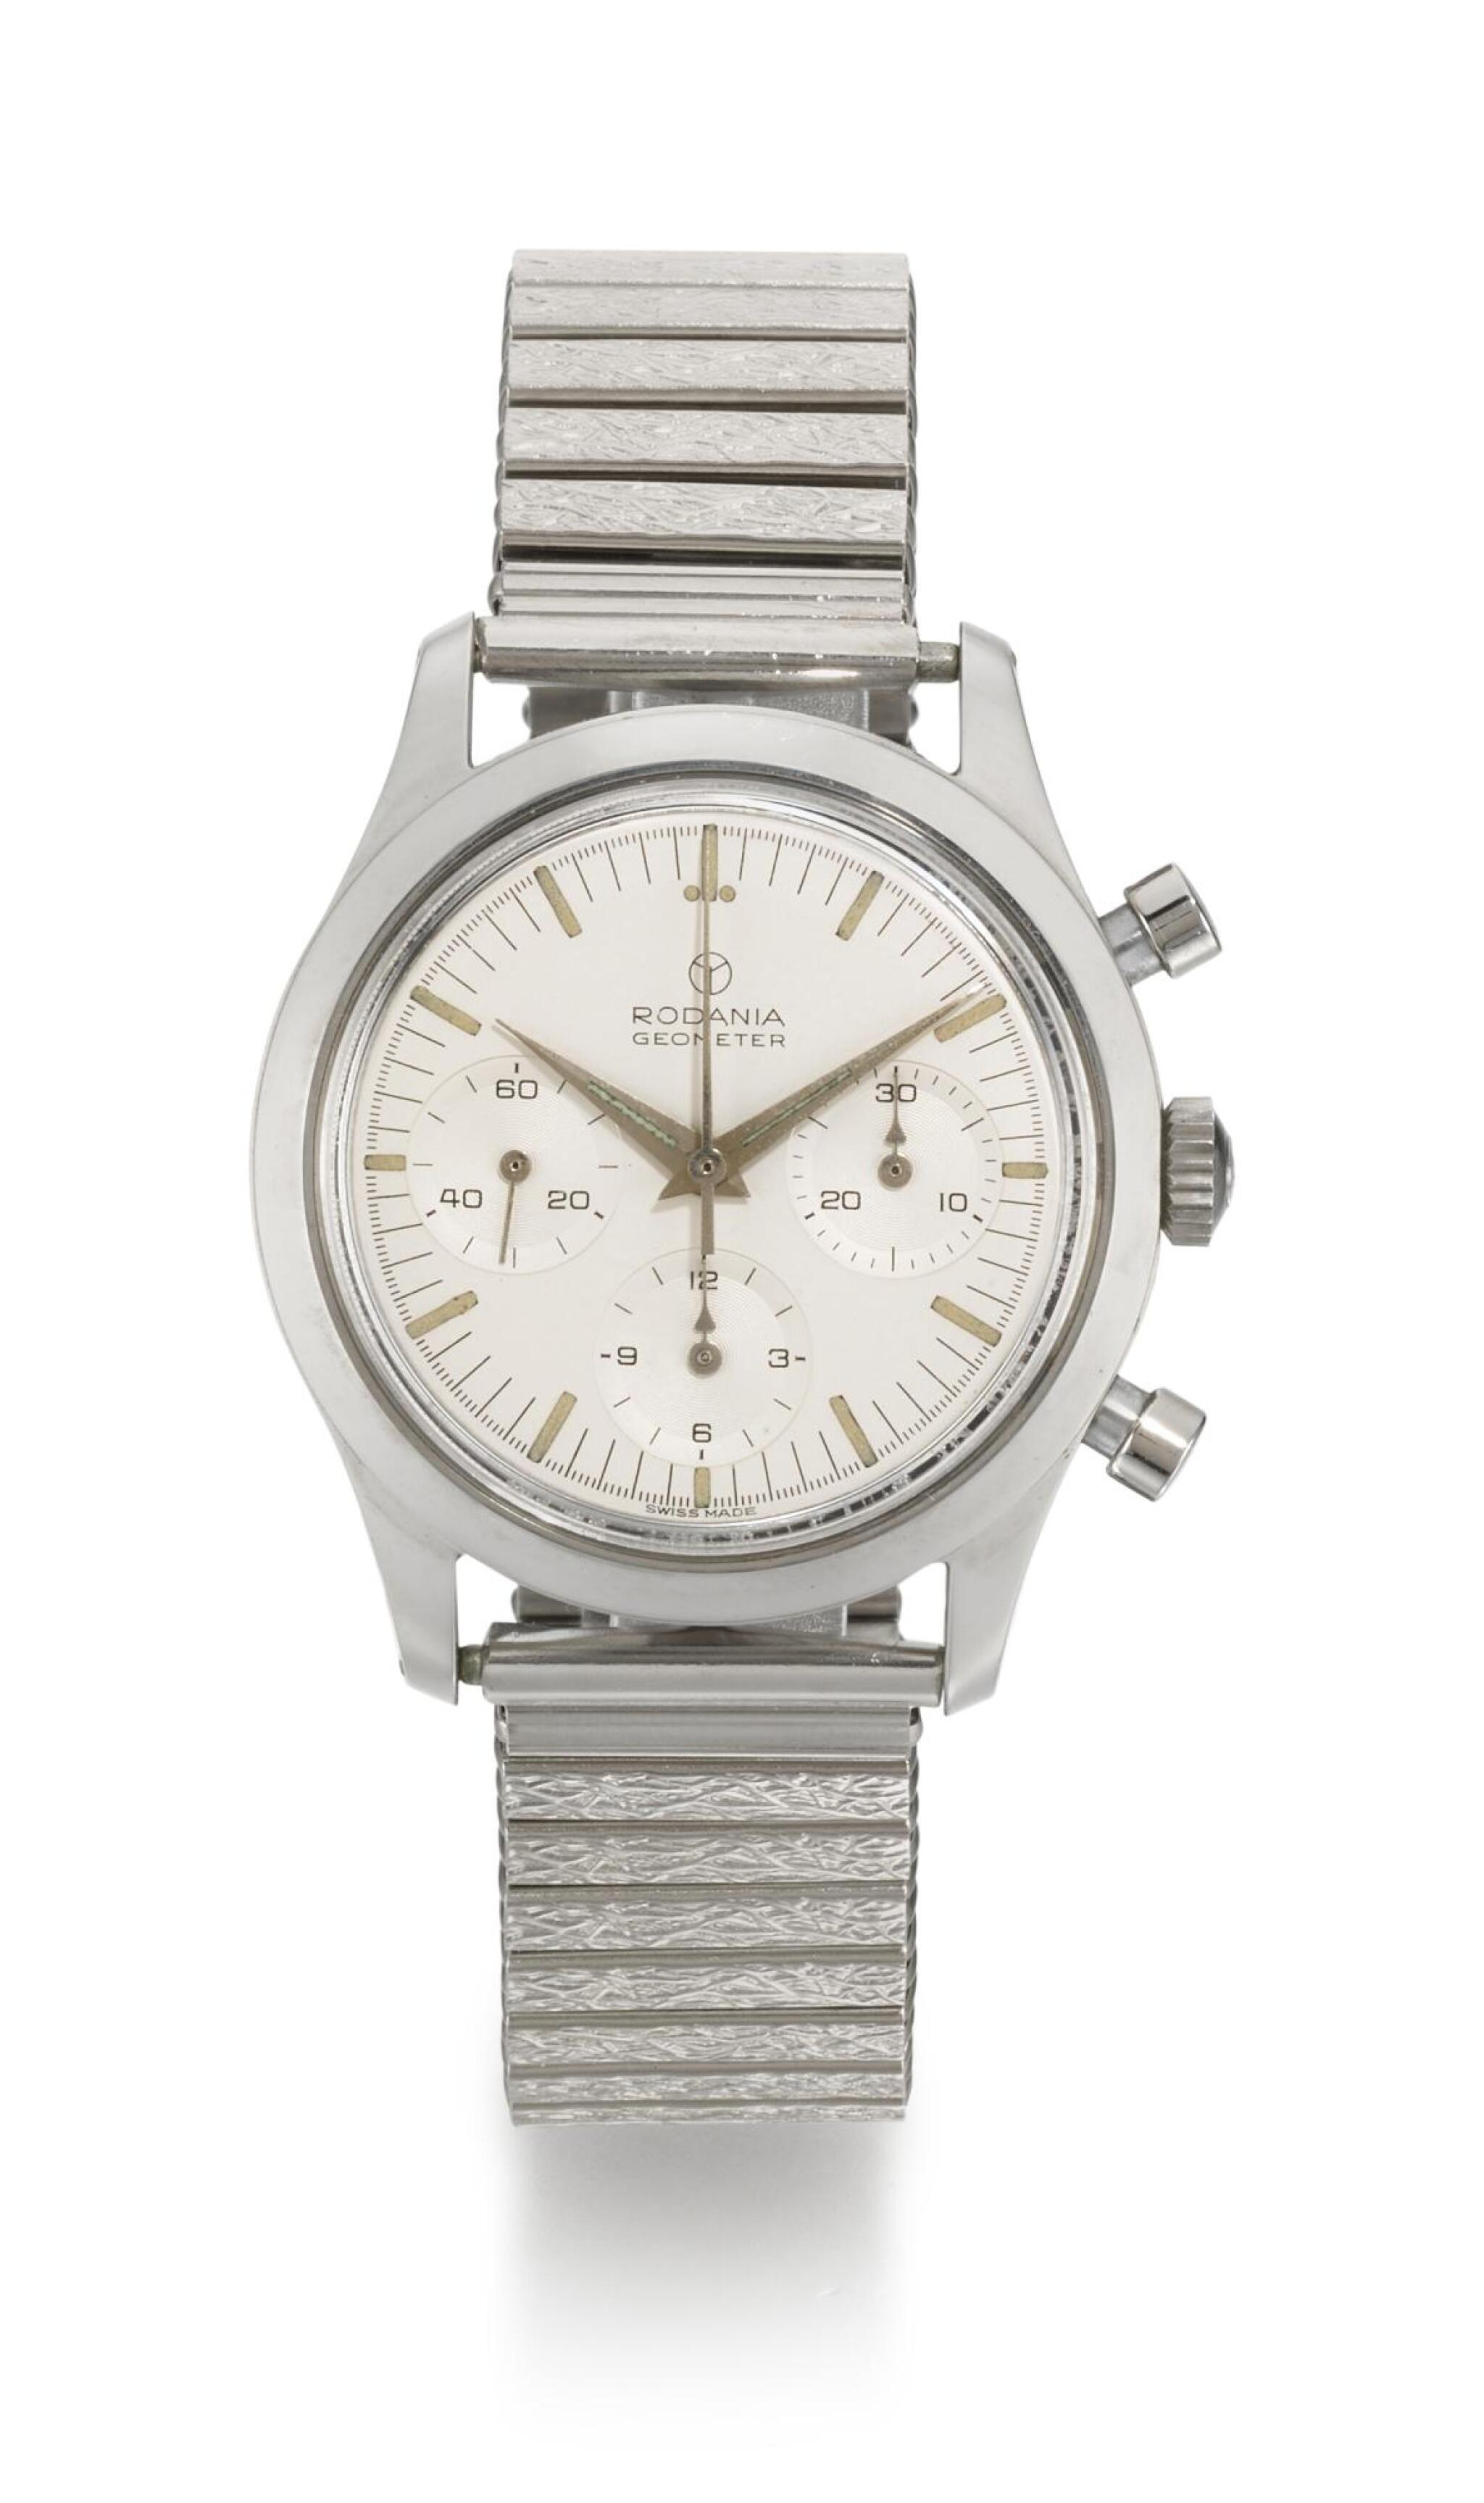 View full screen - View 1 of Lot 34. RODANIA    GEOMETER, REFERENCE 5621 H STAINLESS STEEL CHRONOGRAPH WRISTWATCH WITH BRACELET,  CIRCA 1965 .